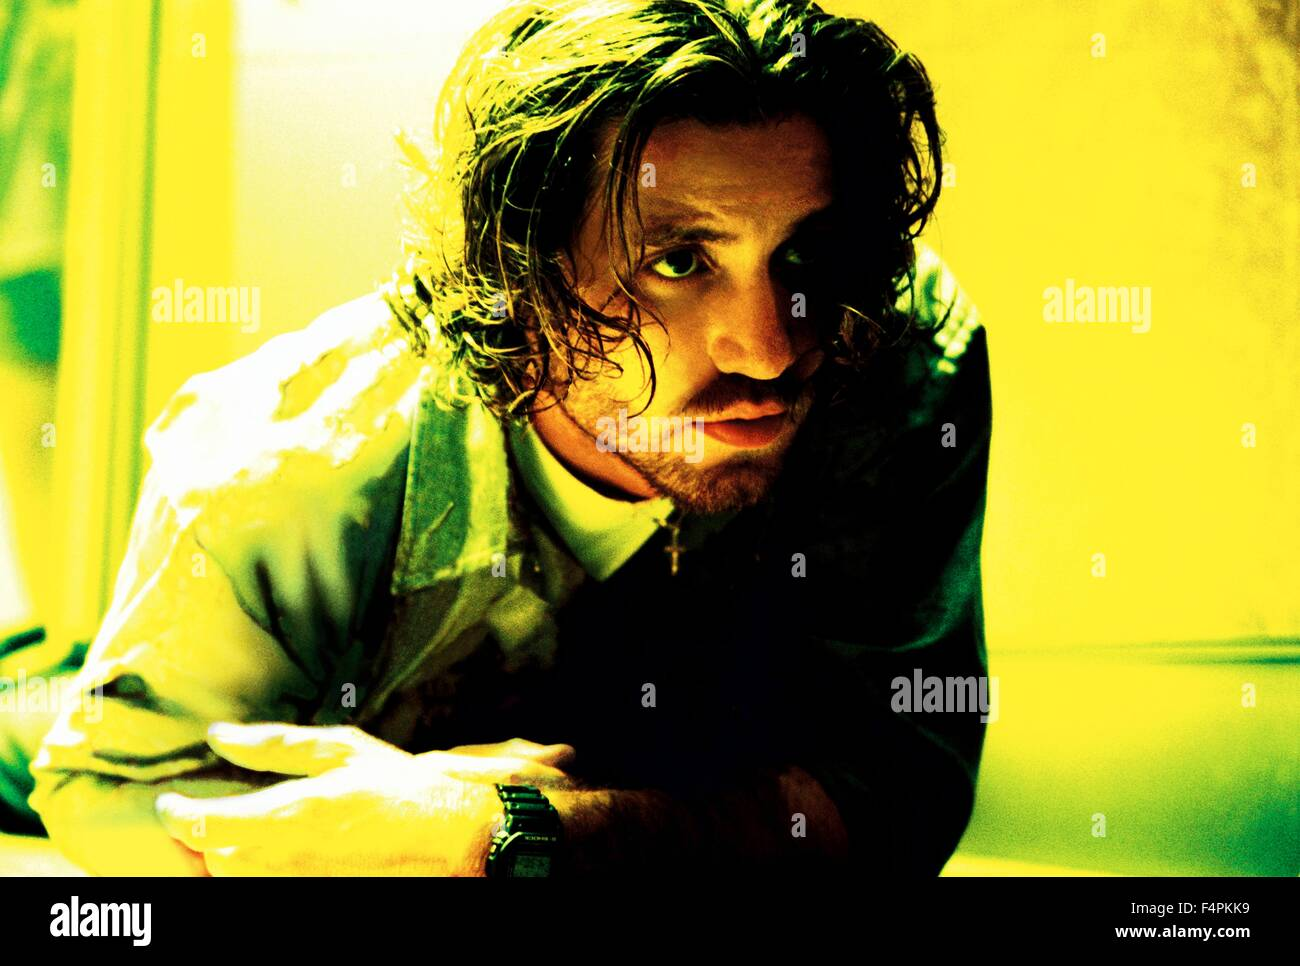 Edgar Ramirez / Domino / 2005 directed by Tony Scott [New Line Cinema] - Stock Image